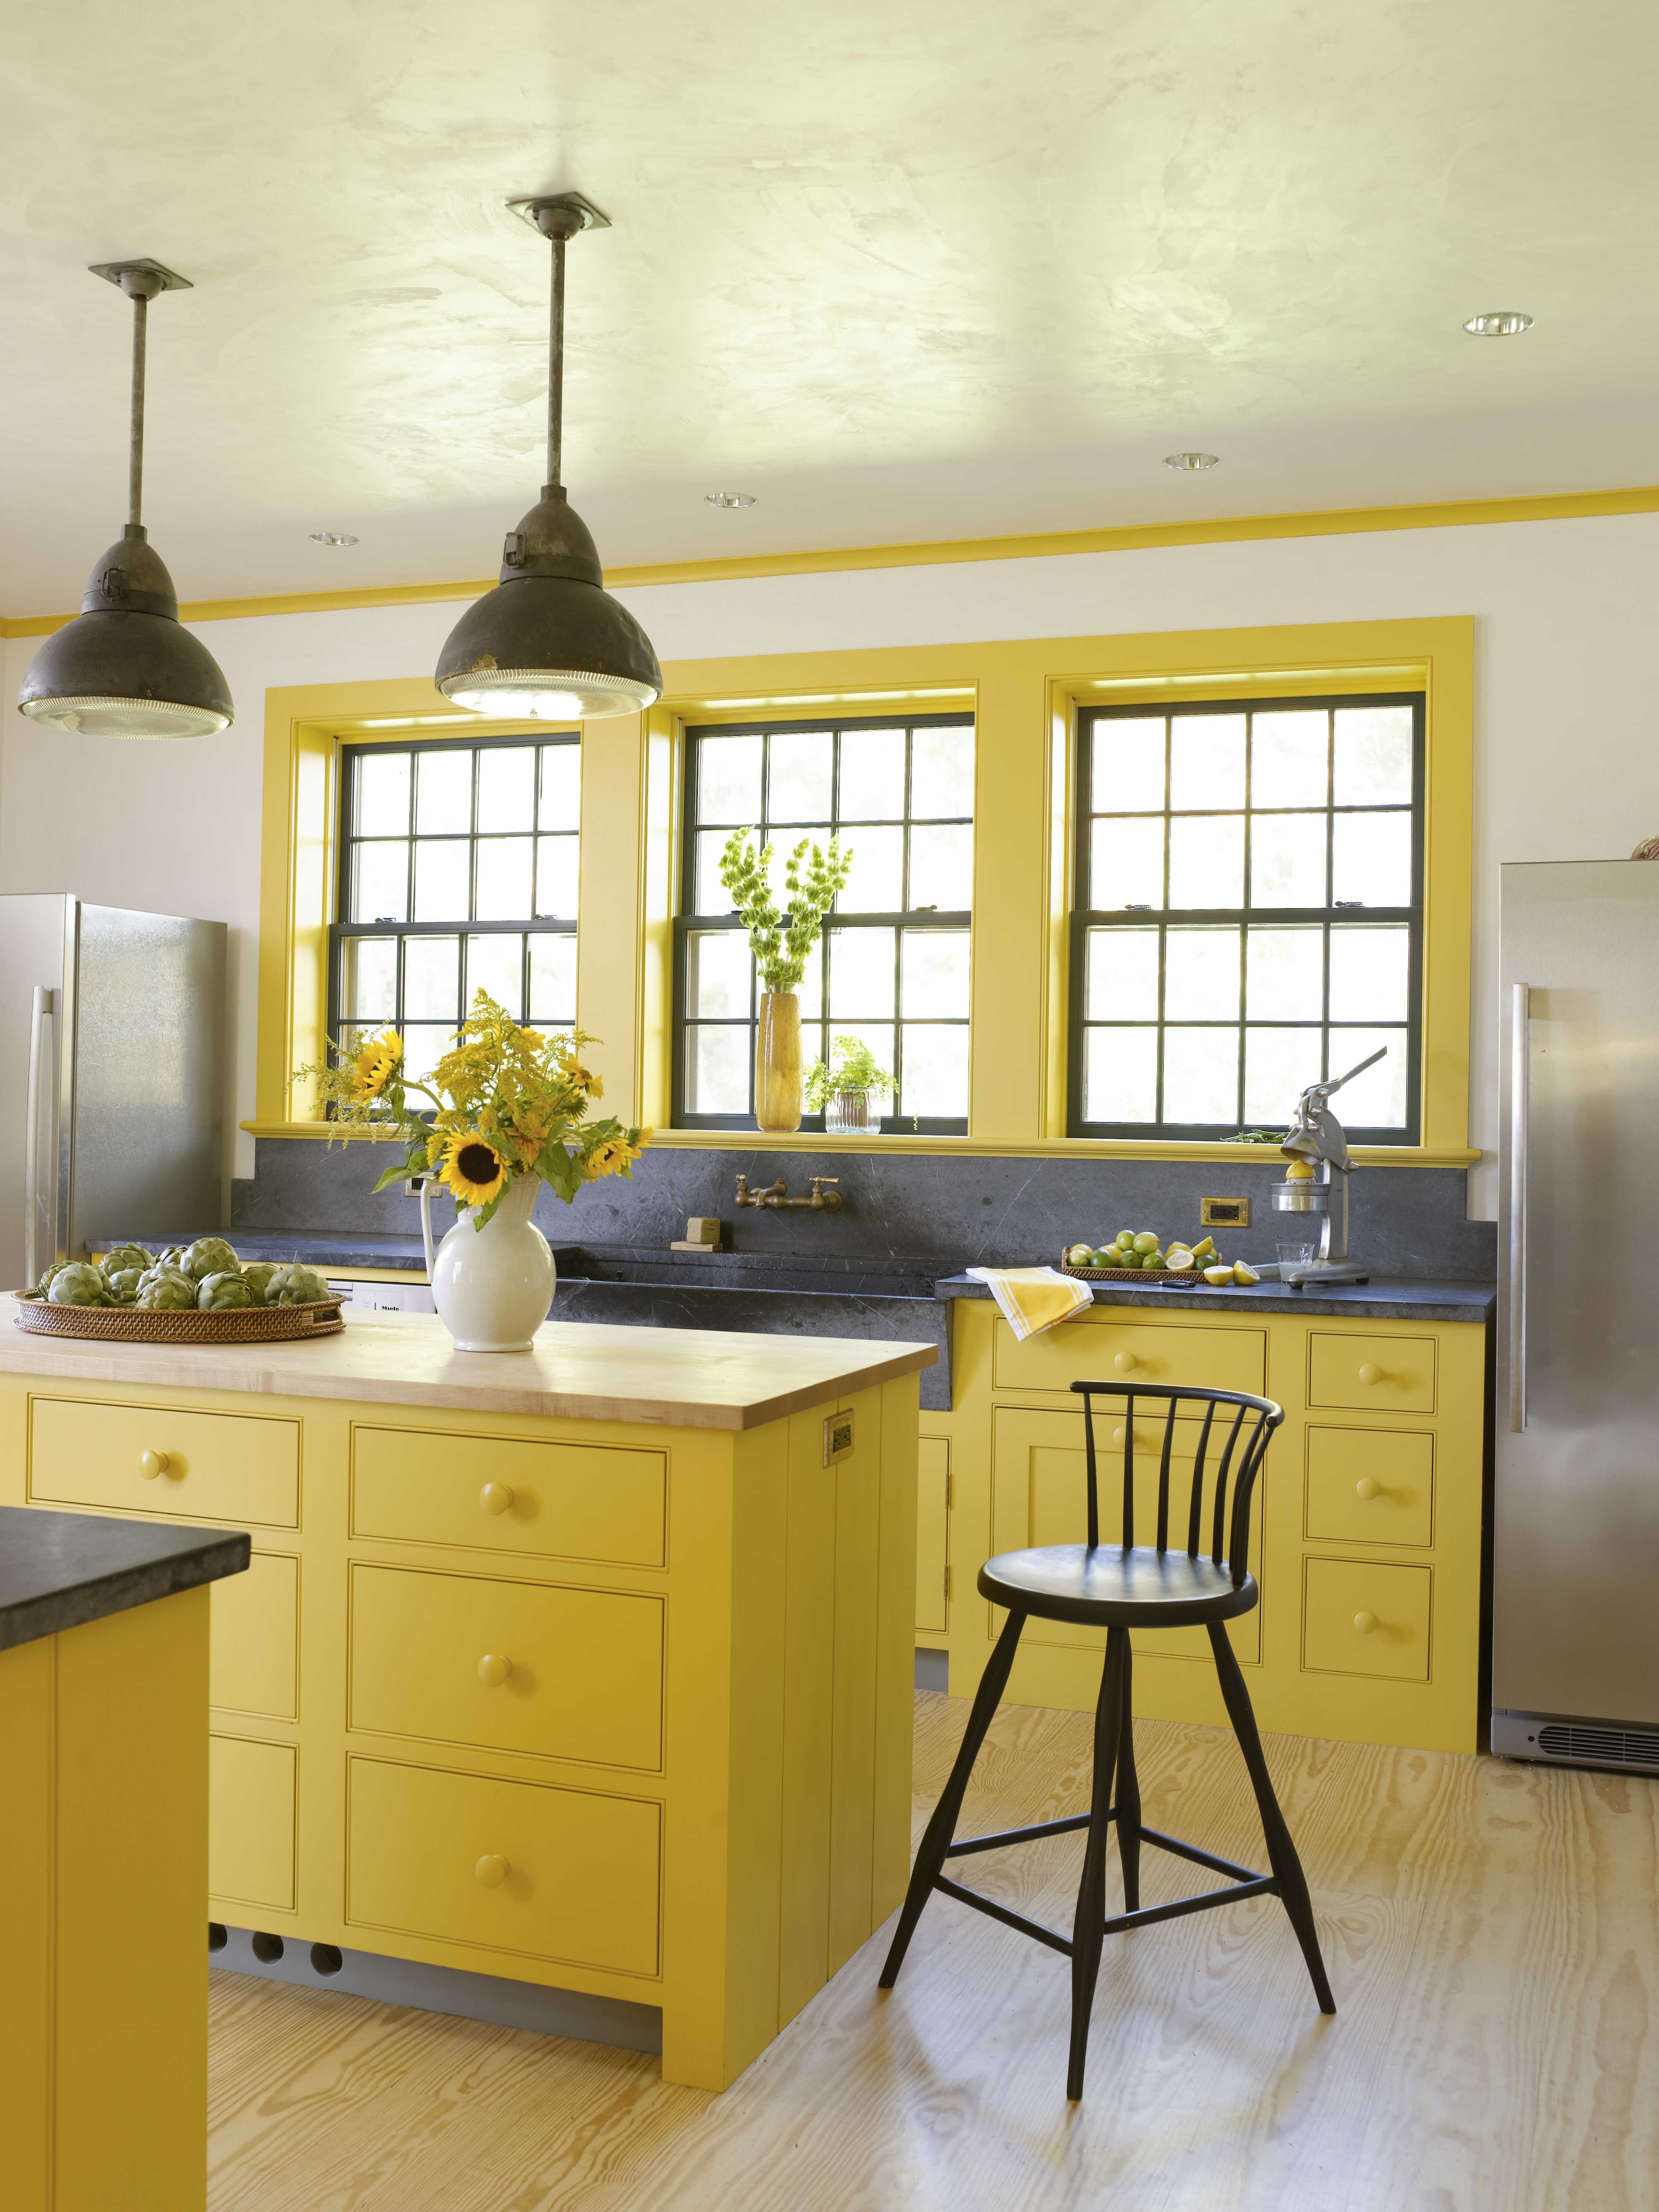 Traditional kitchen with soapstone sink vintage lighting yellow